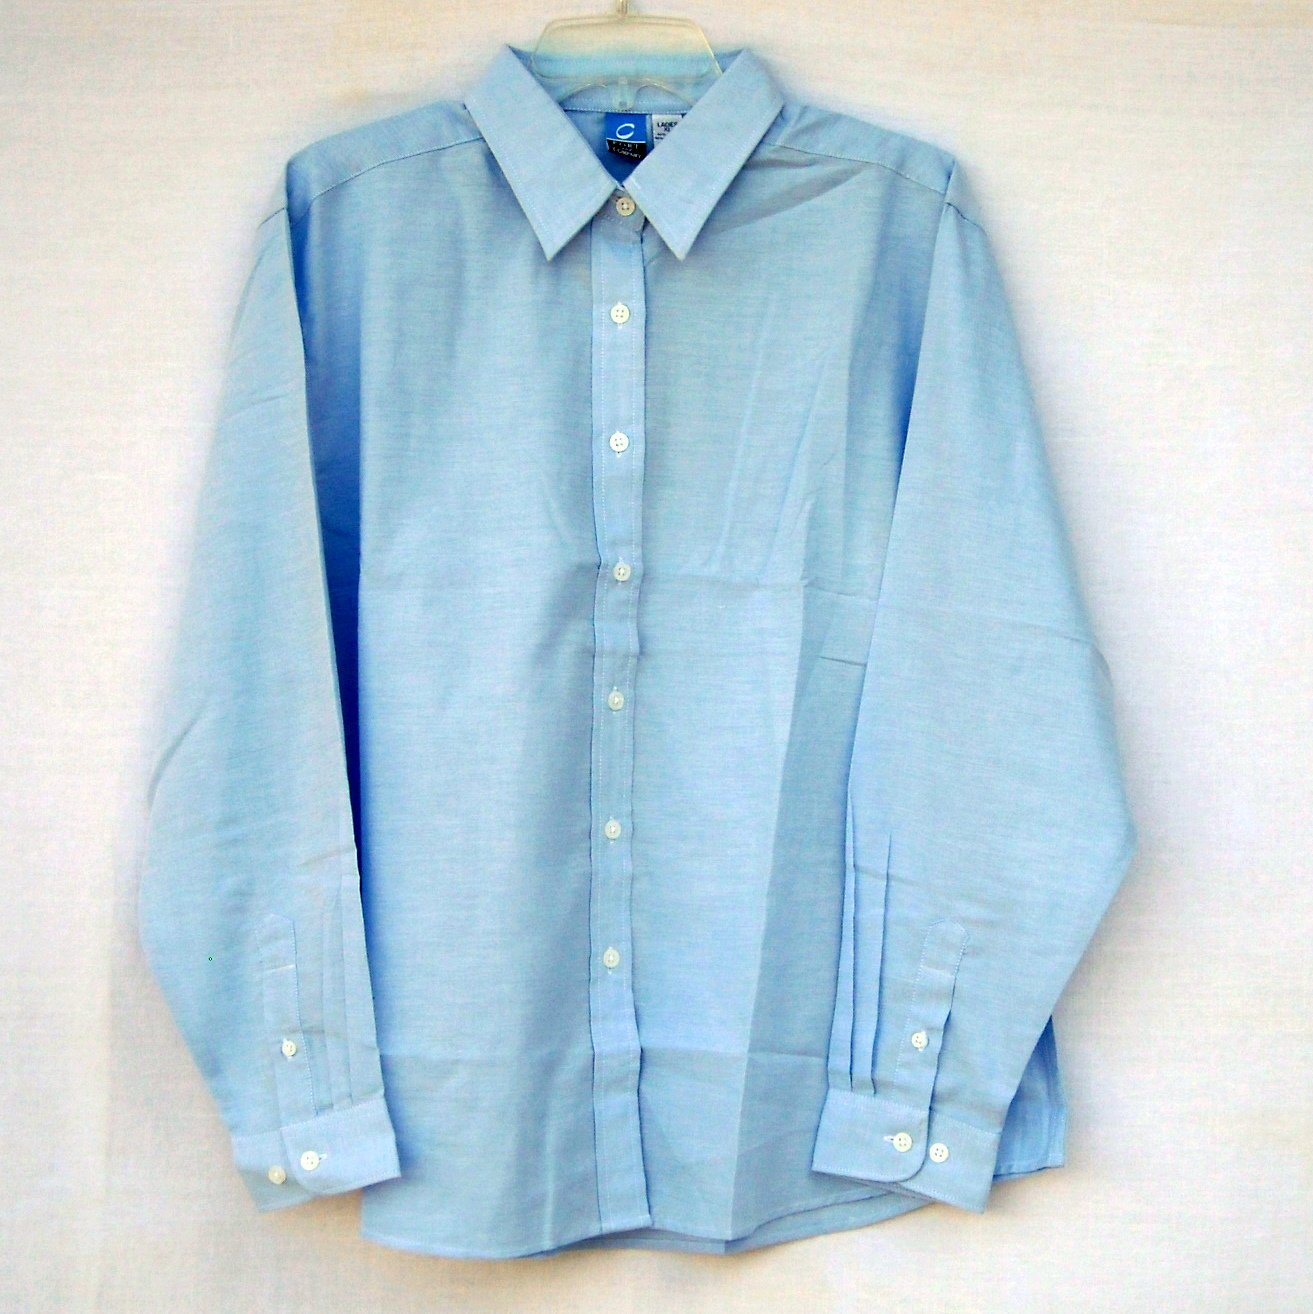 Misses Blue Denim Button Up Western Shirt Top Size S Small